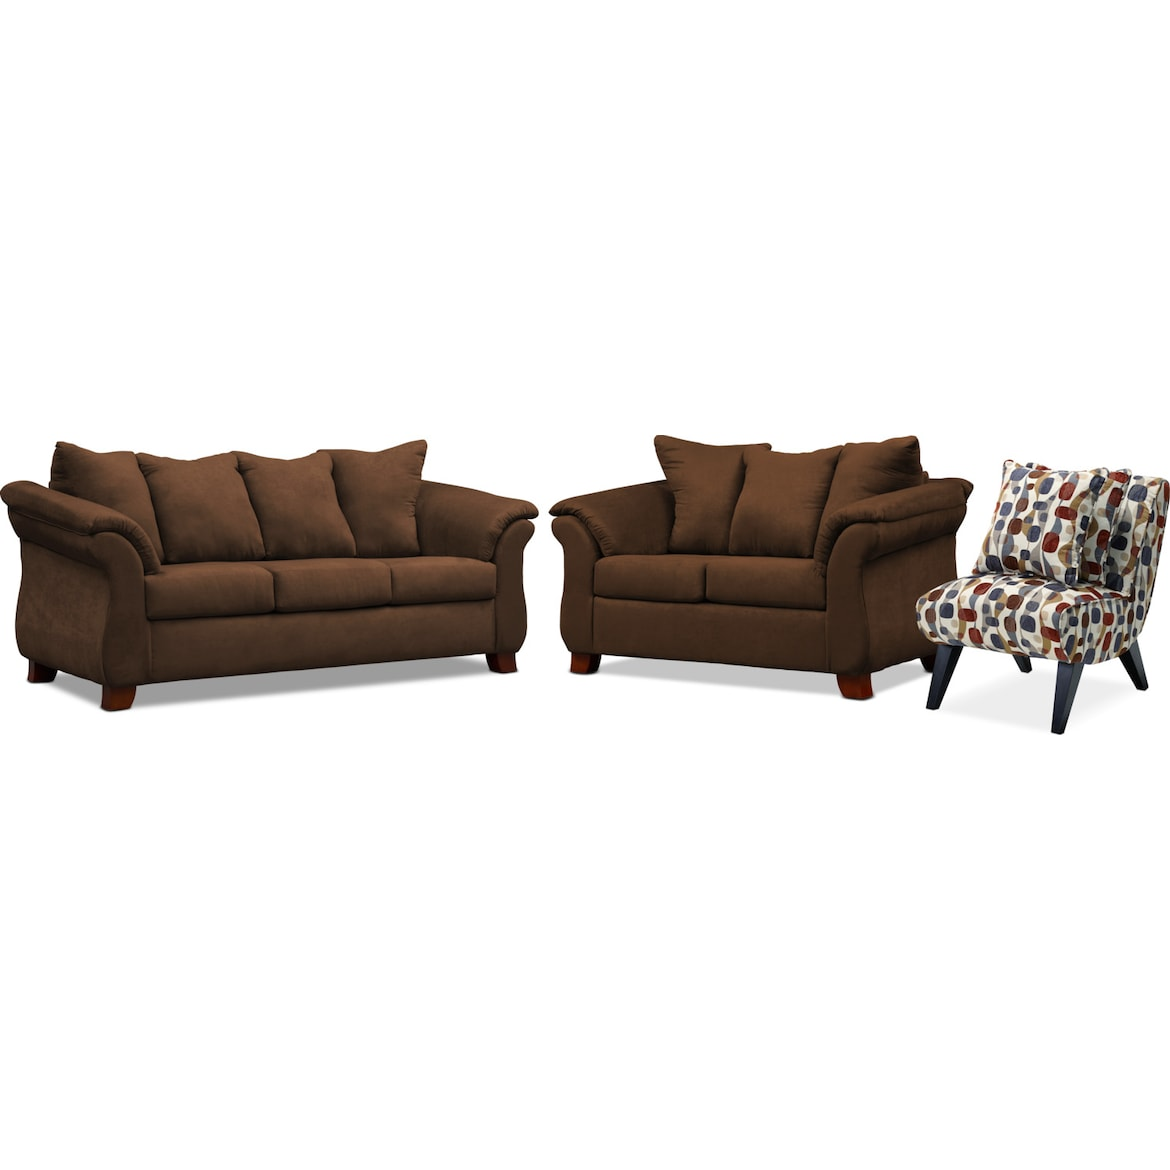 Adrian Sofa Loveseat And Accent Chair Value City